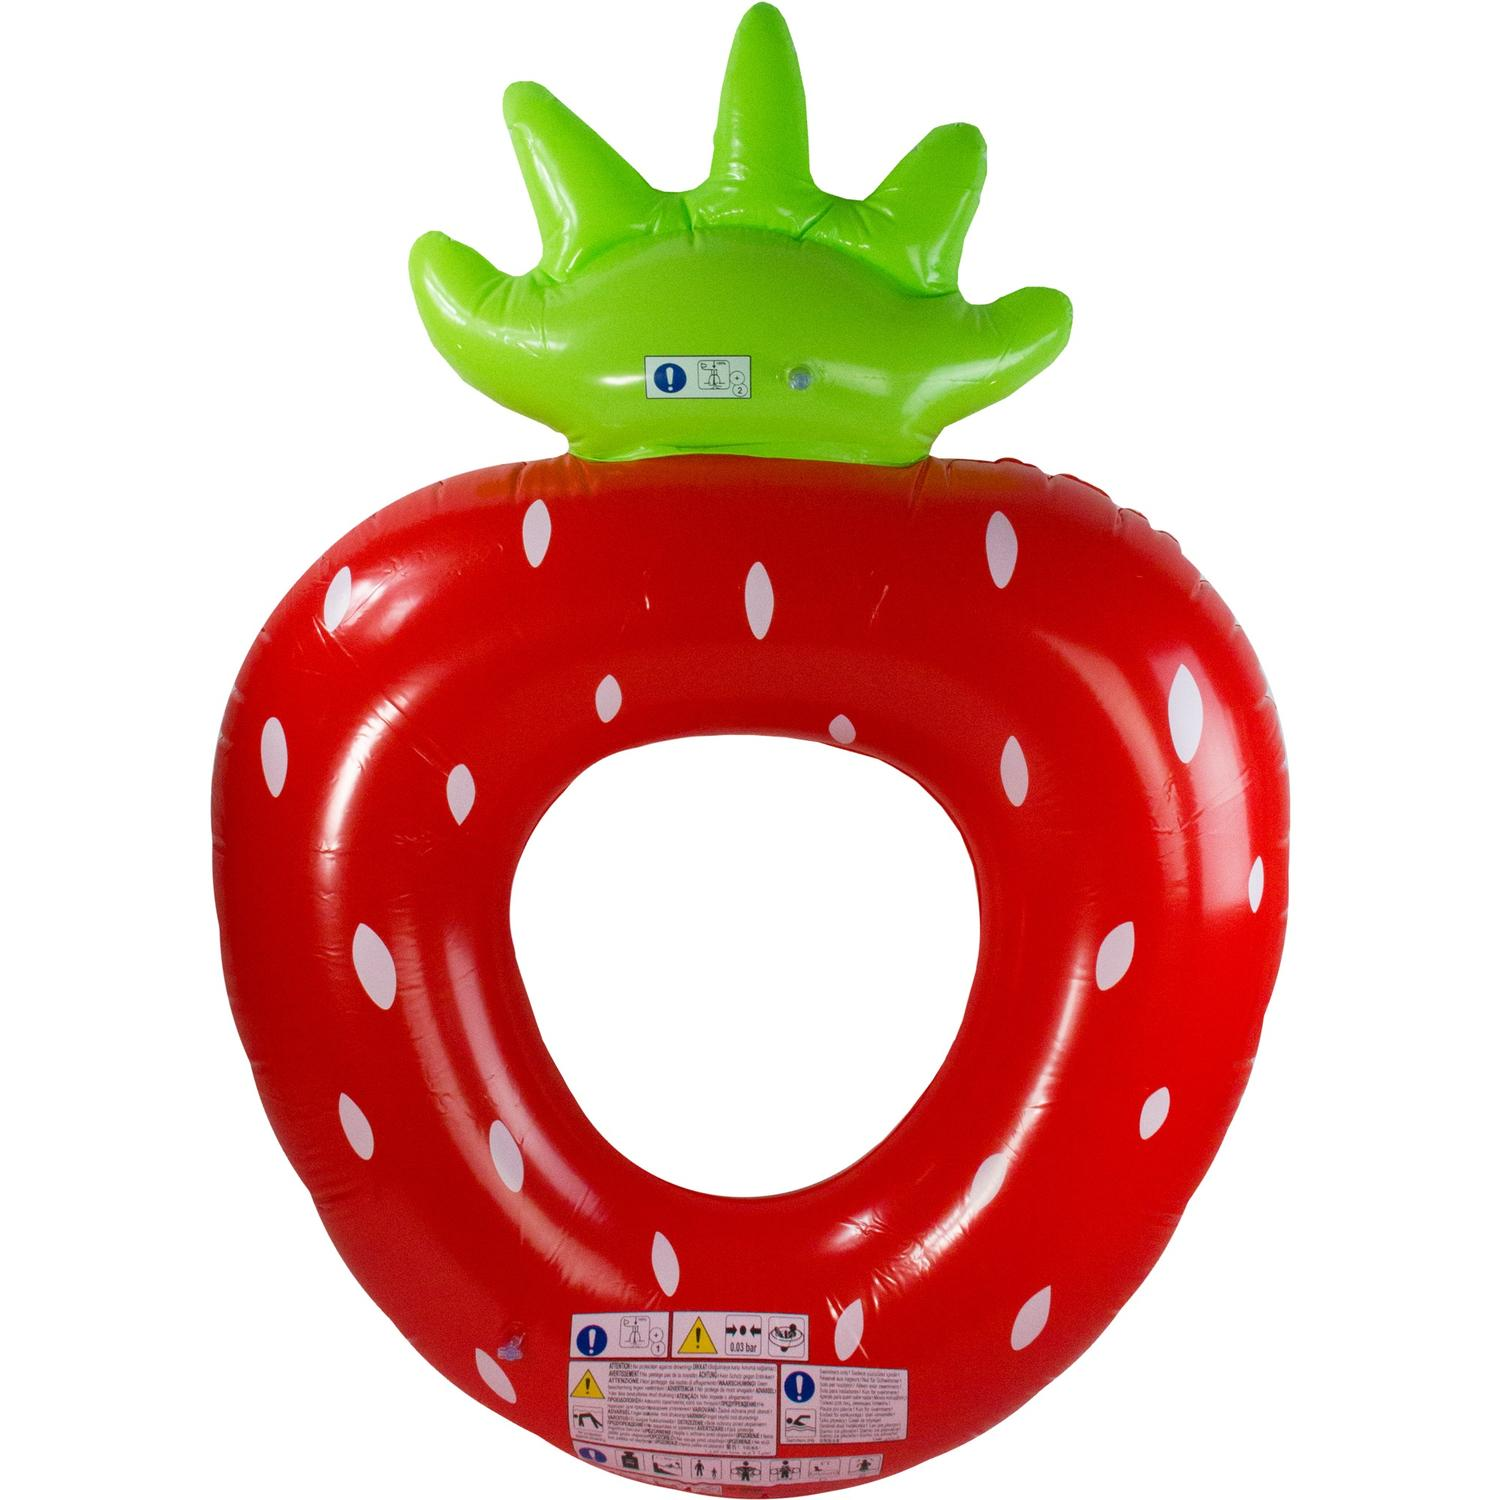 Red, White and Green Inflatable Strawberry Shaped Swimming Pool Float